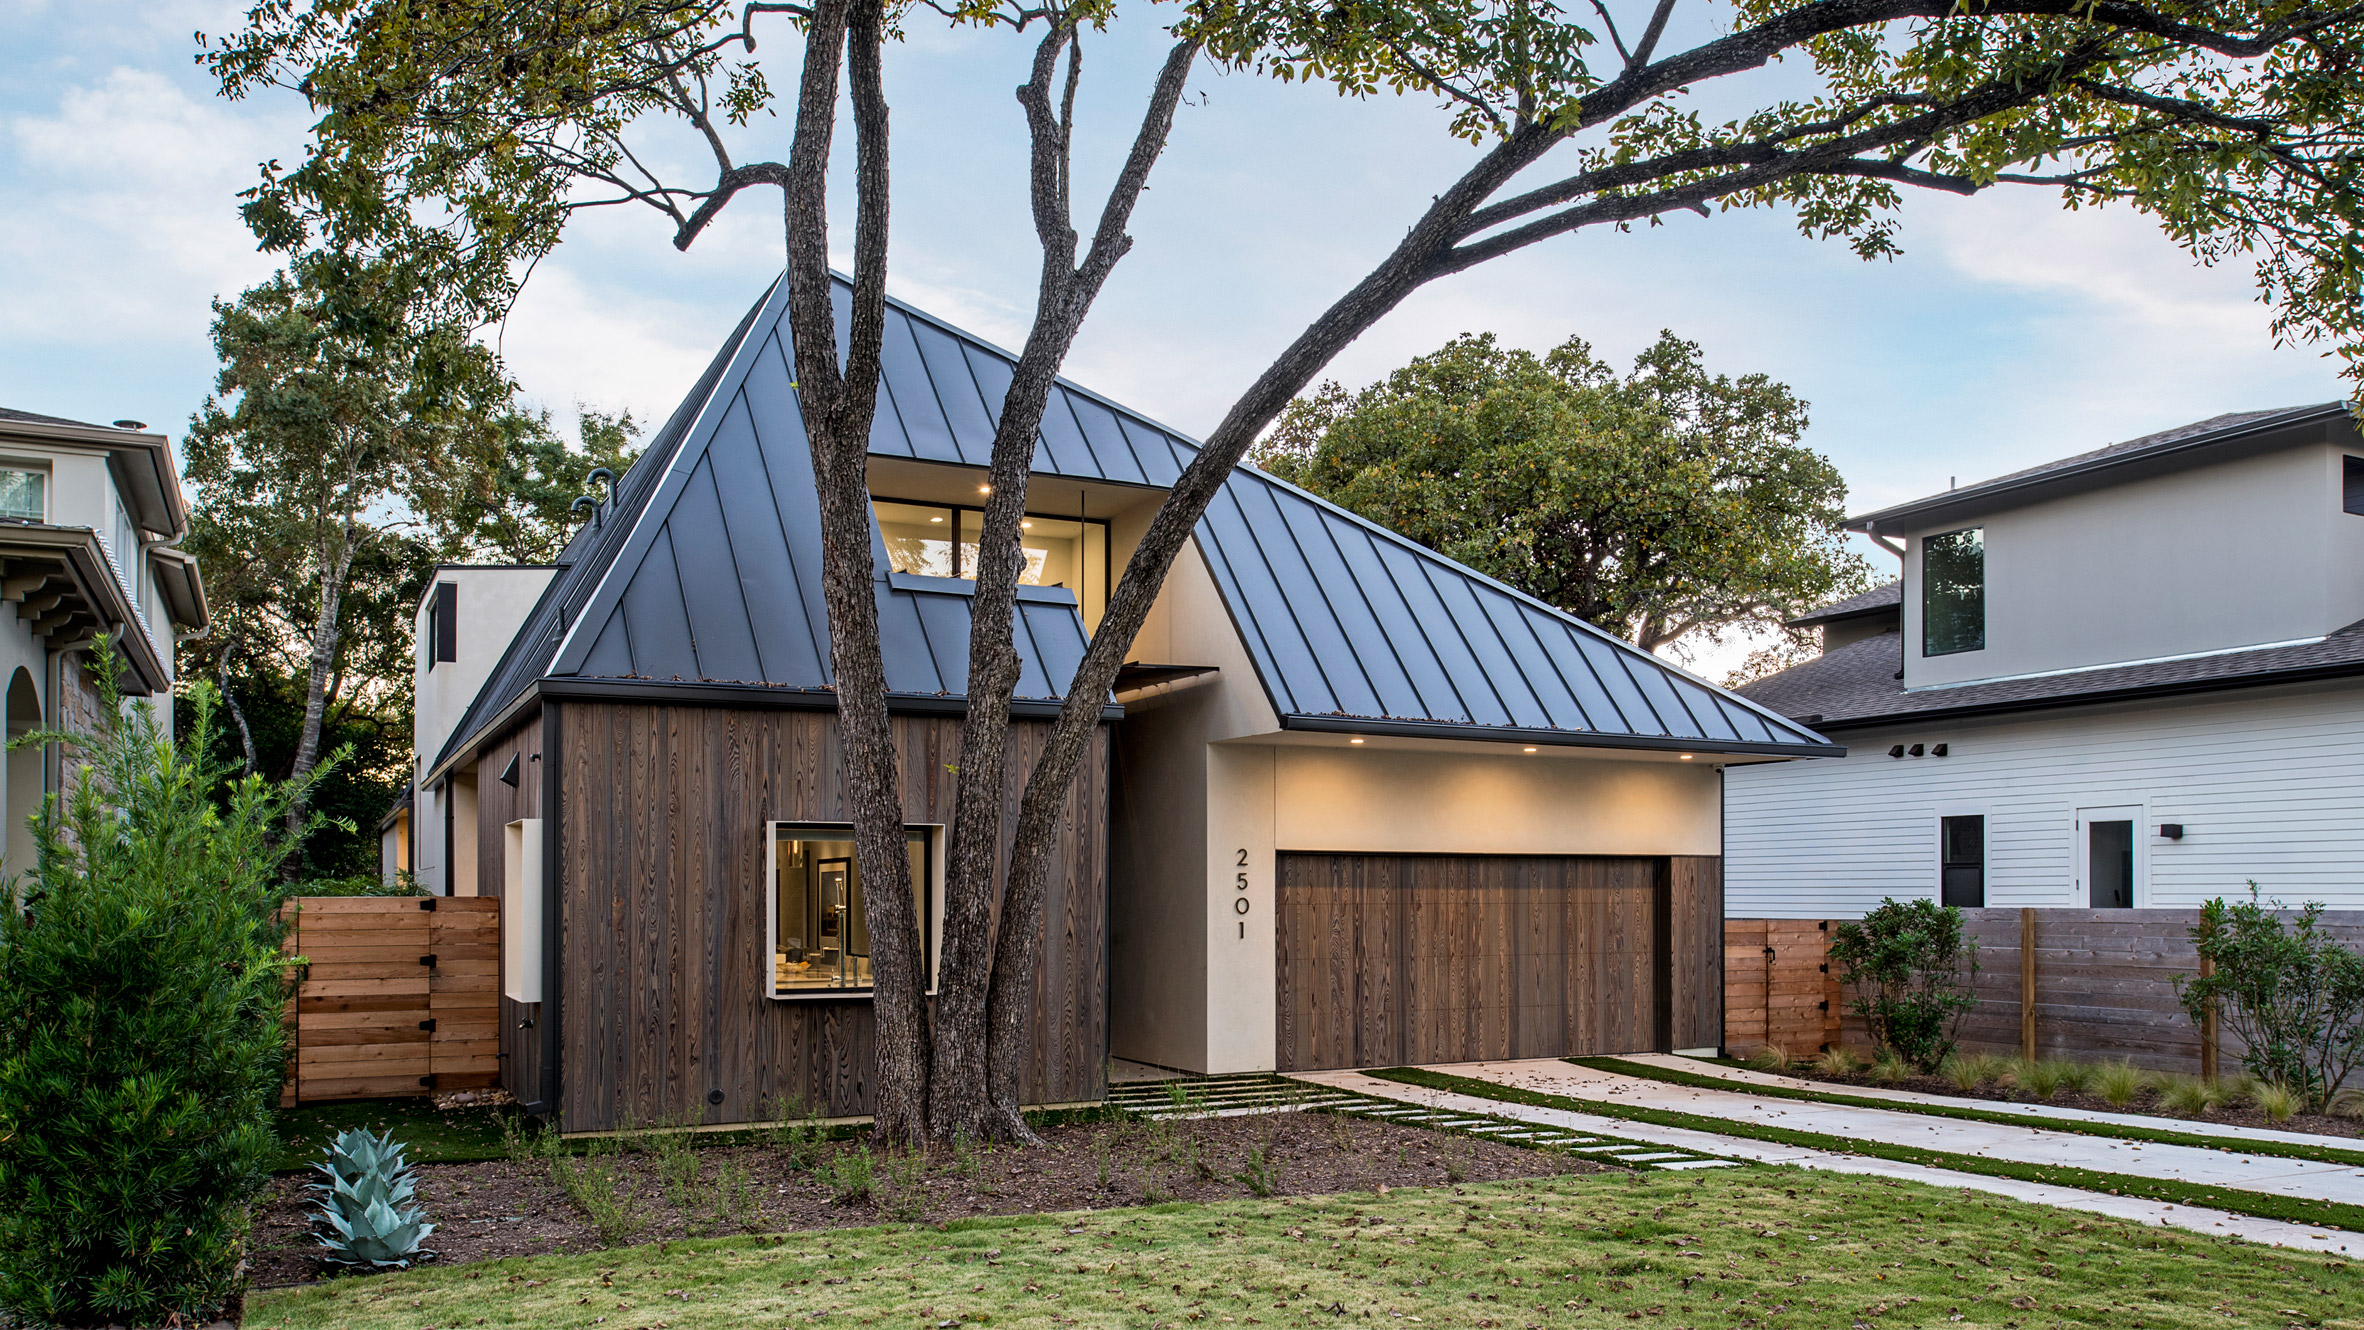 design hound hides second storey of austin home behind faceted roof - Austin Home Design